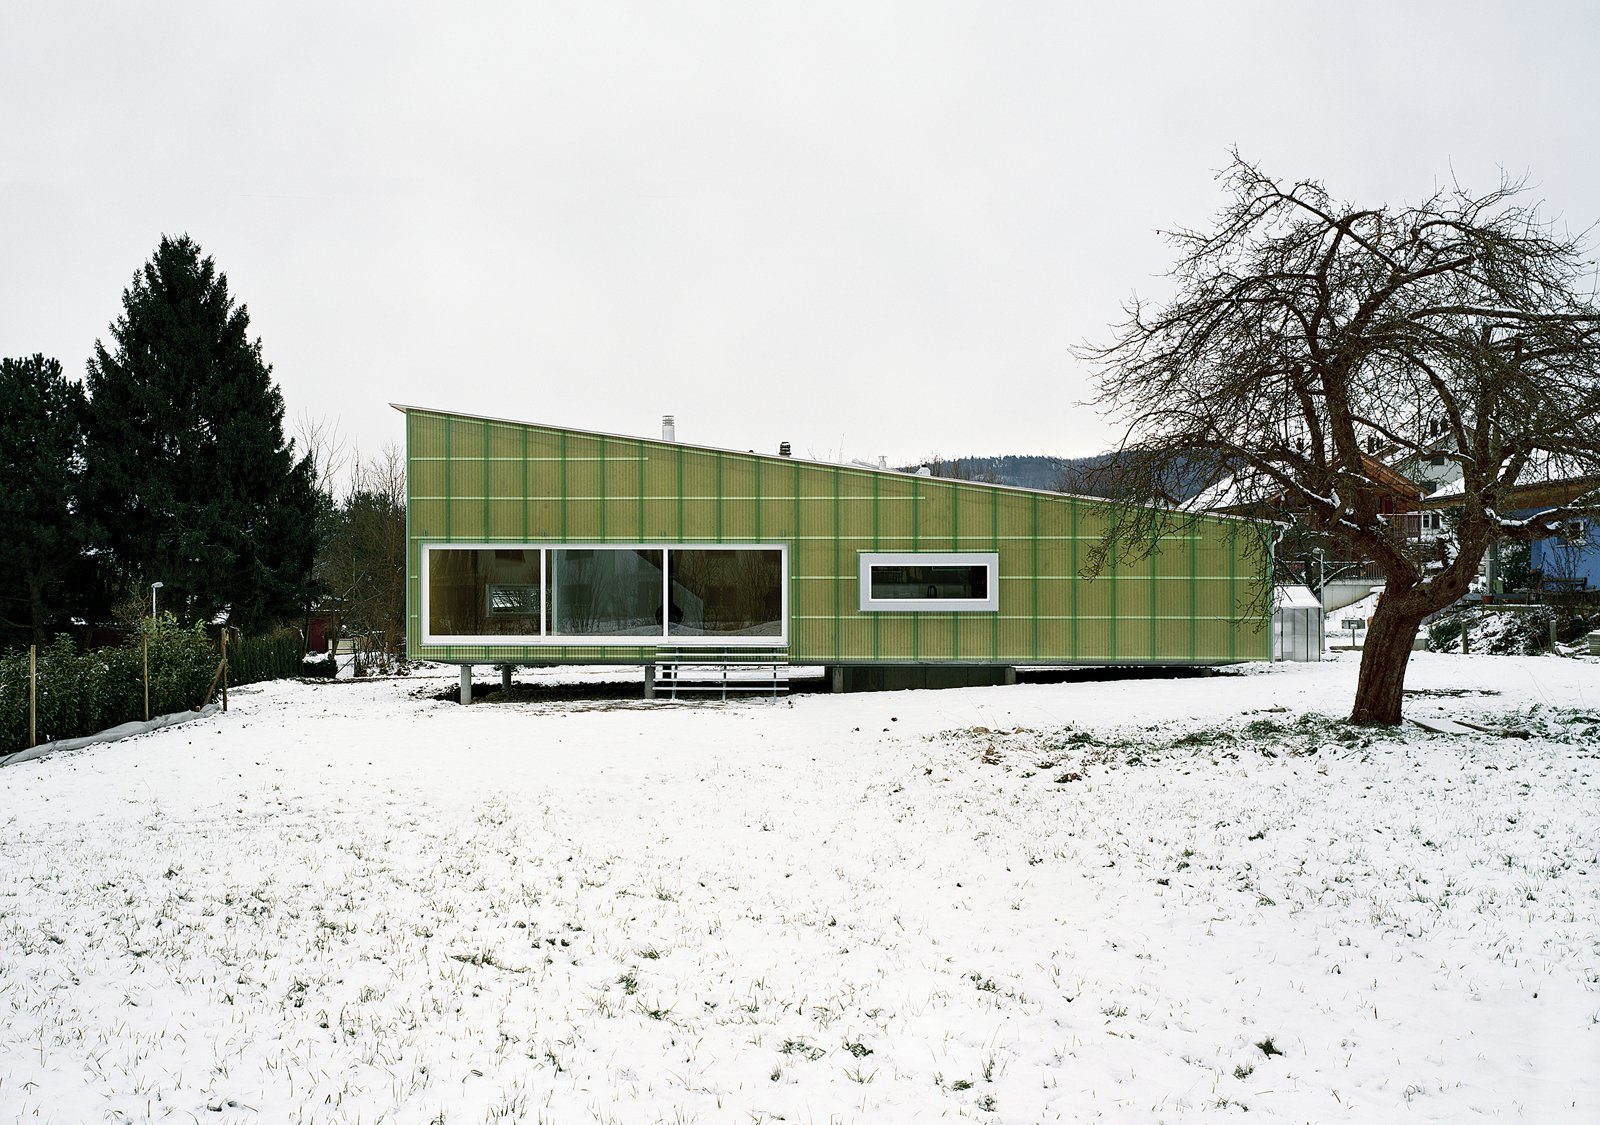 The entire house is made from slabs of prefabricated, formaldehyde-free compressed straw.  (Nearly) Net-Zero Homes by Erika Heet